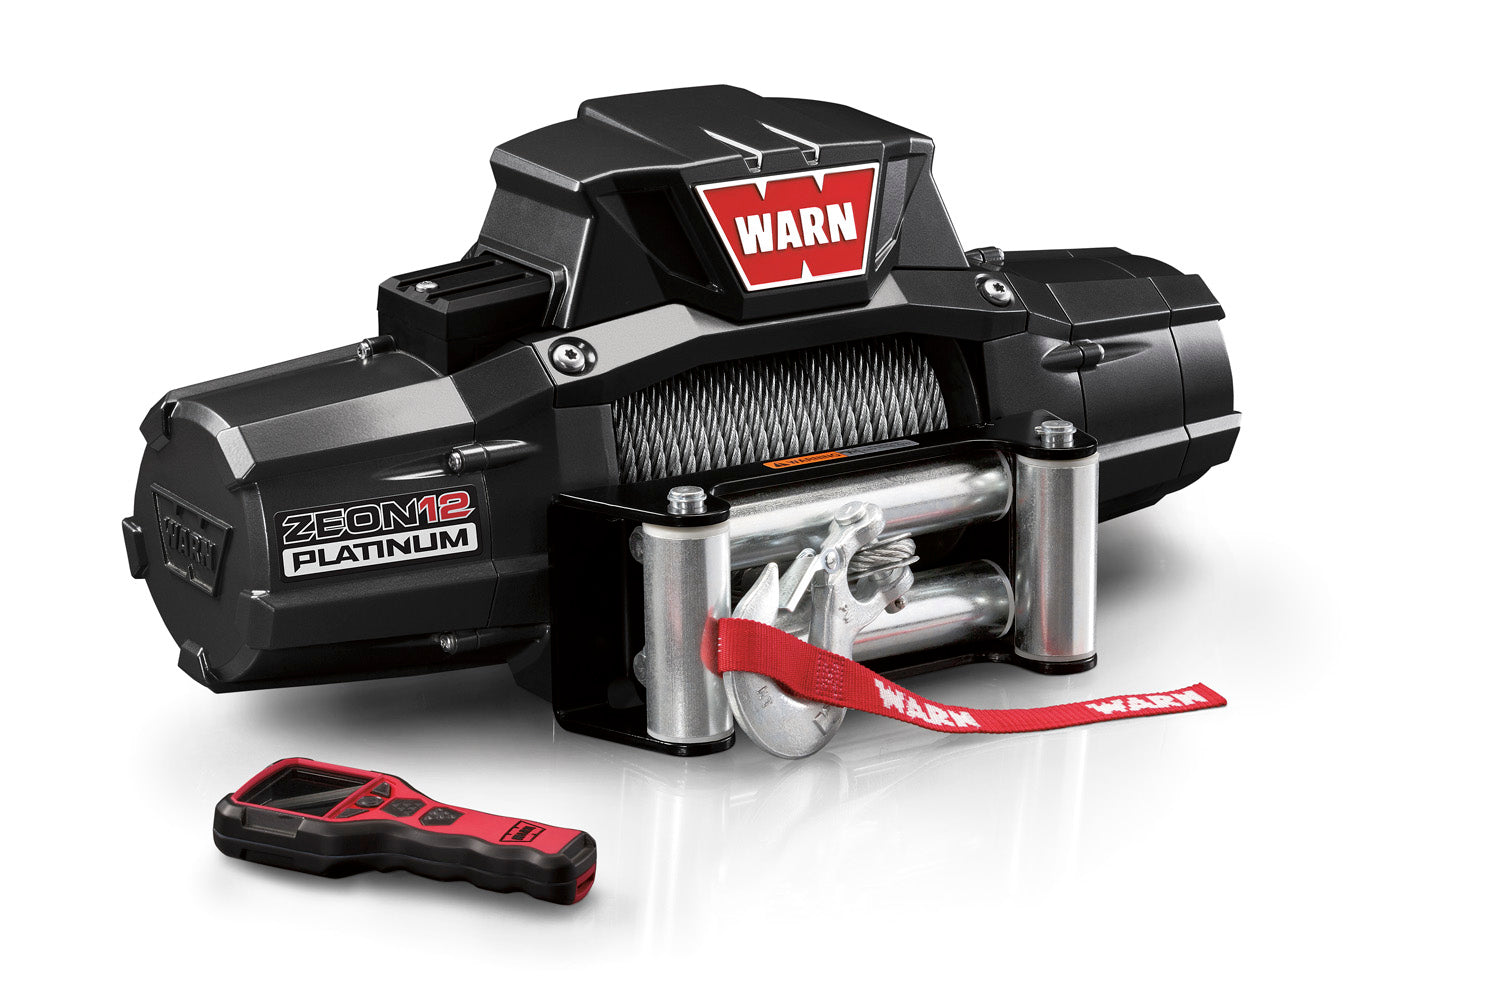 WARN Zeon 12 Winch